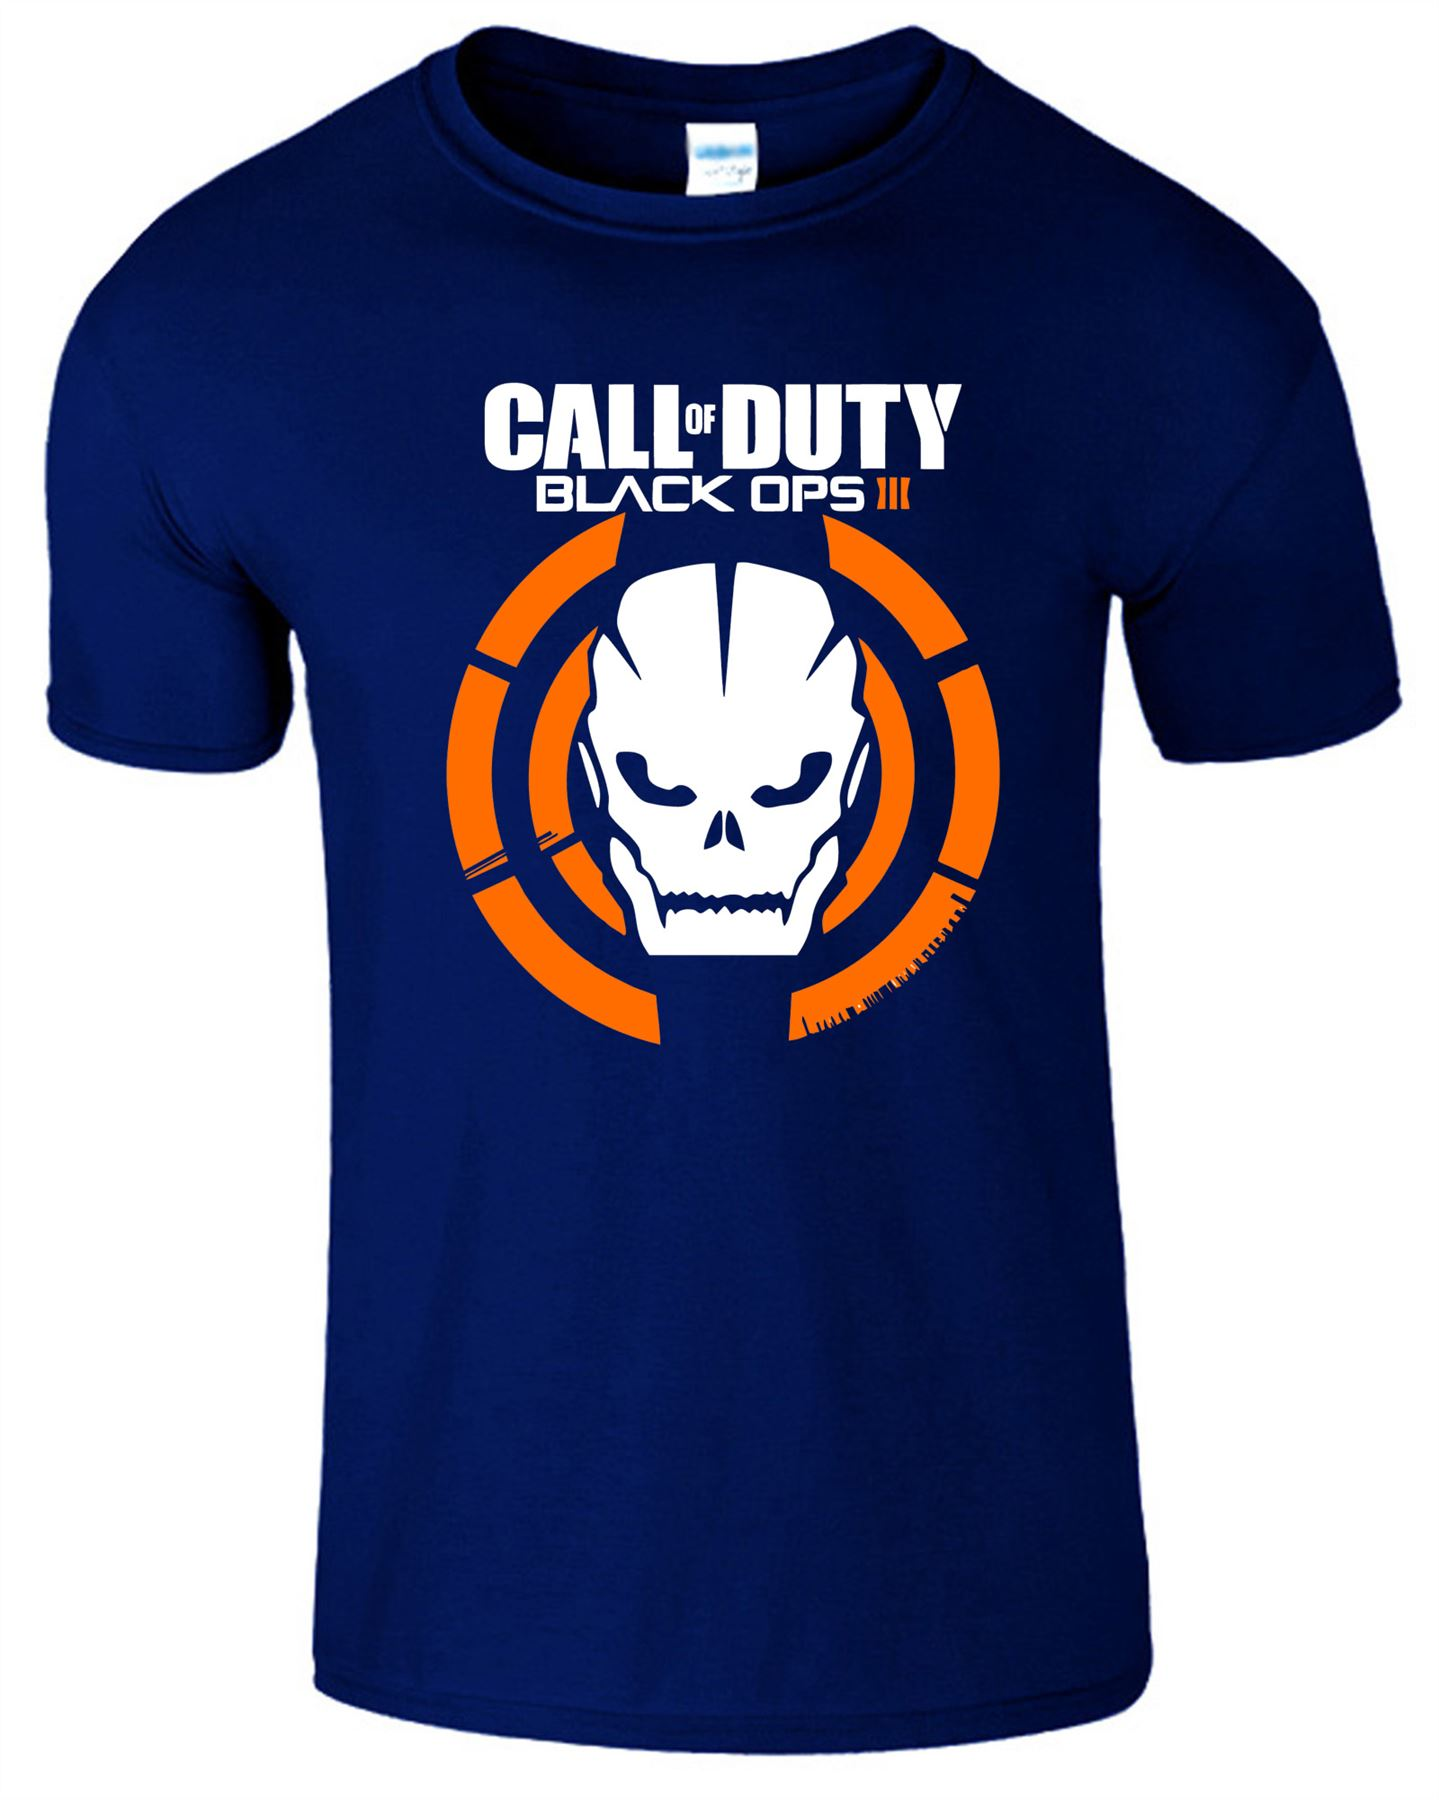 Duty-Black-Ops-Xbox-PS3-PS4-Game-Logo-With-Skull-Mens-Tshirt-Tee-Top-Gift miniatuur 6